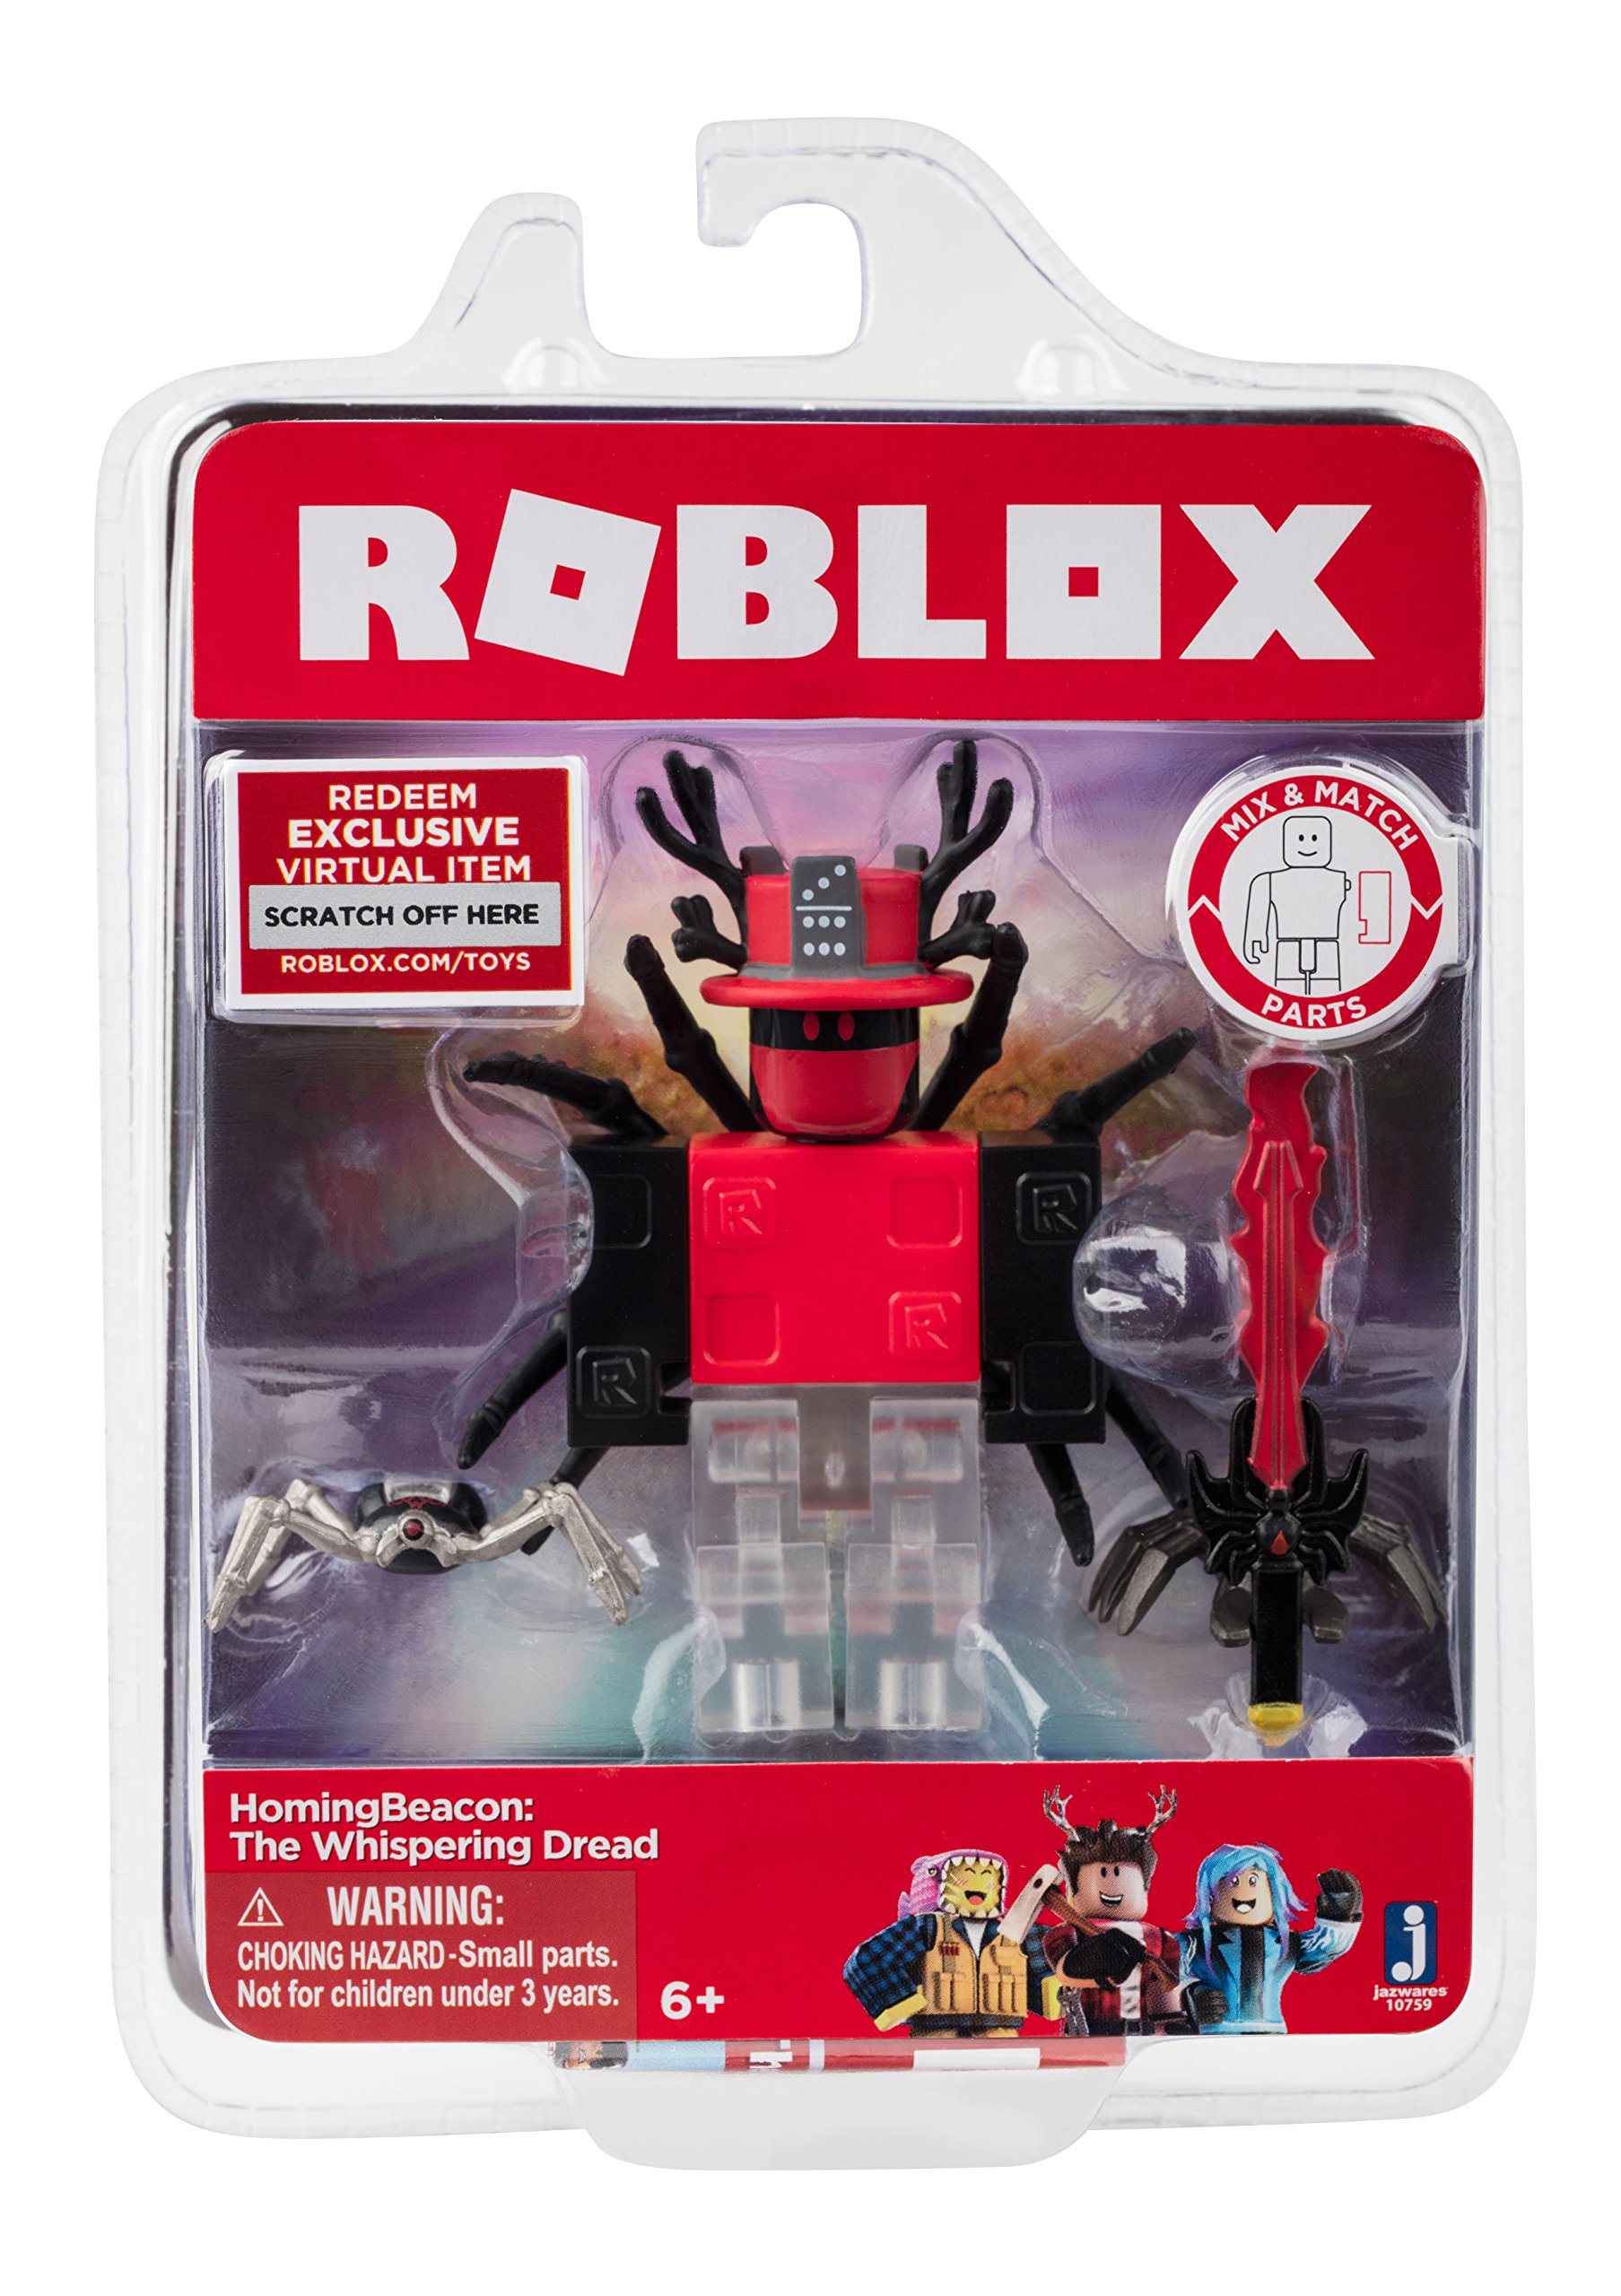 Roblox HomingBeacon: The Whispering Dread Figure Pack